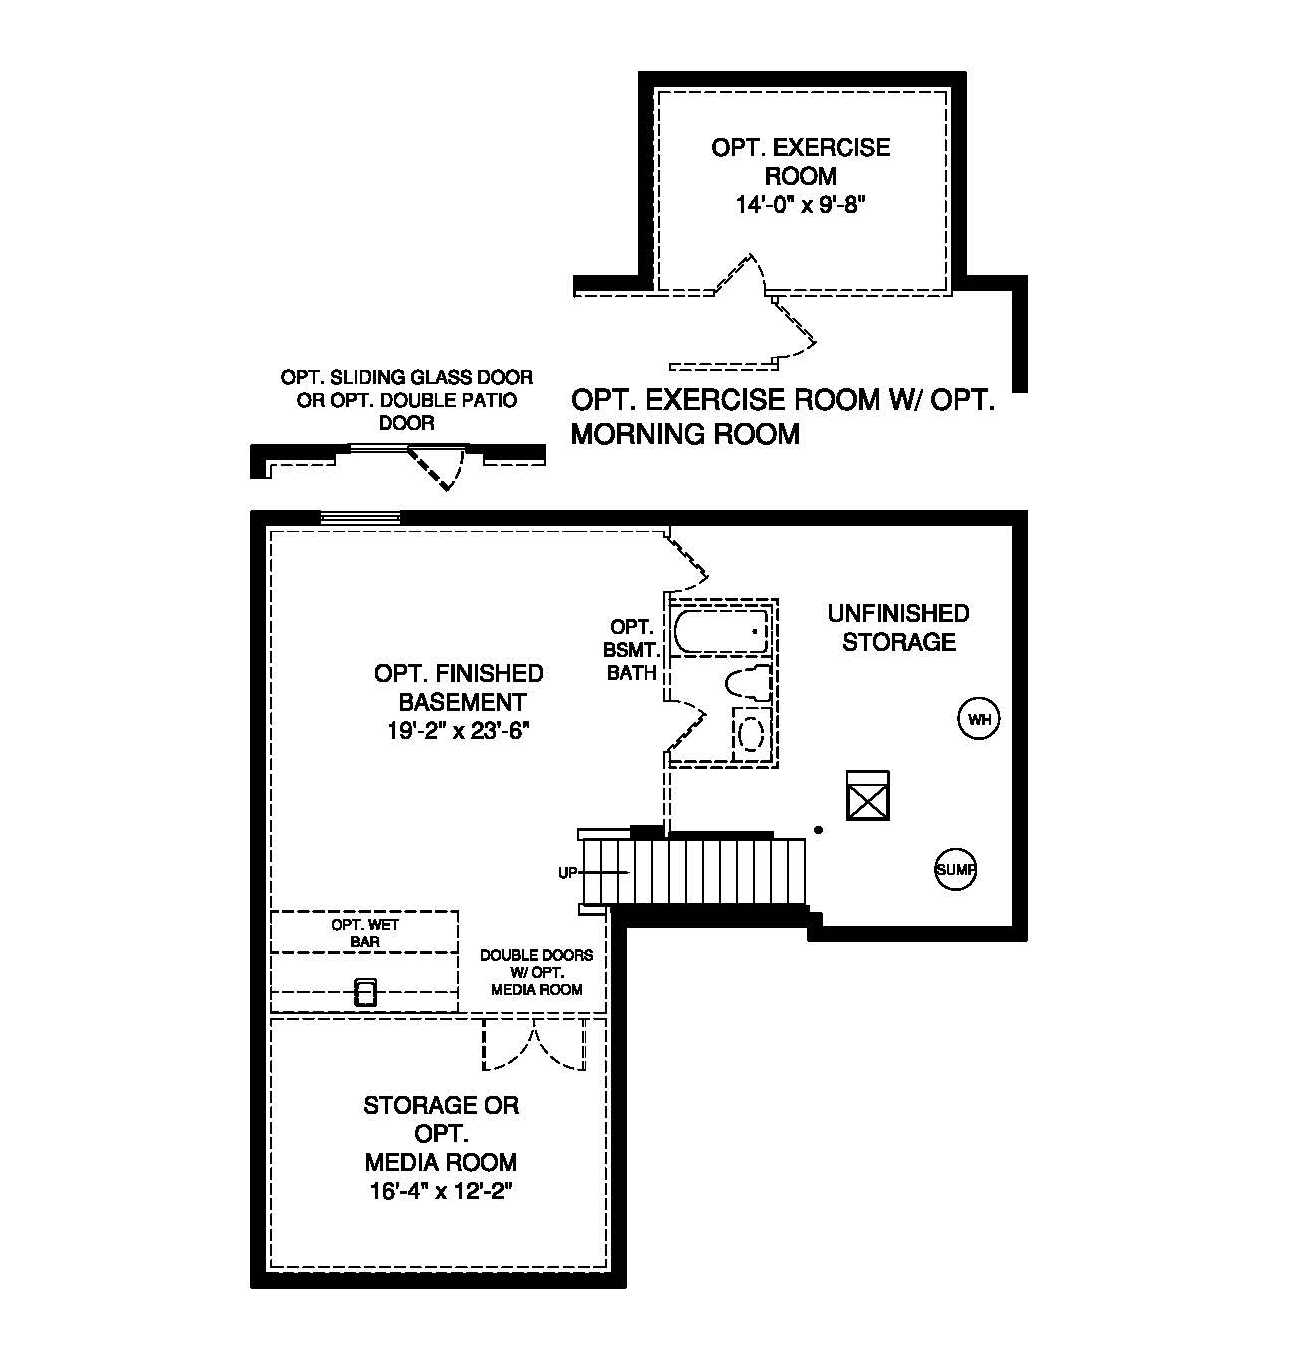 Ryan Homes Milan New Home Construction Experience Basement Plans – Ryan Homes Venice Floor Plan